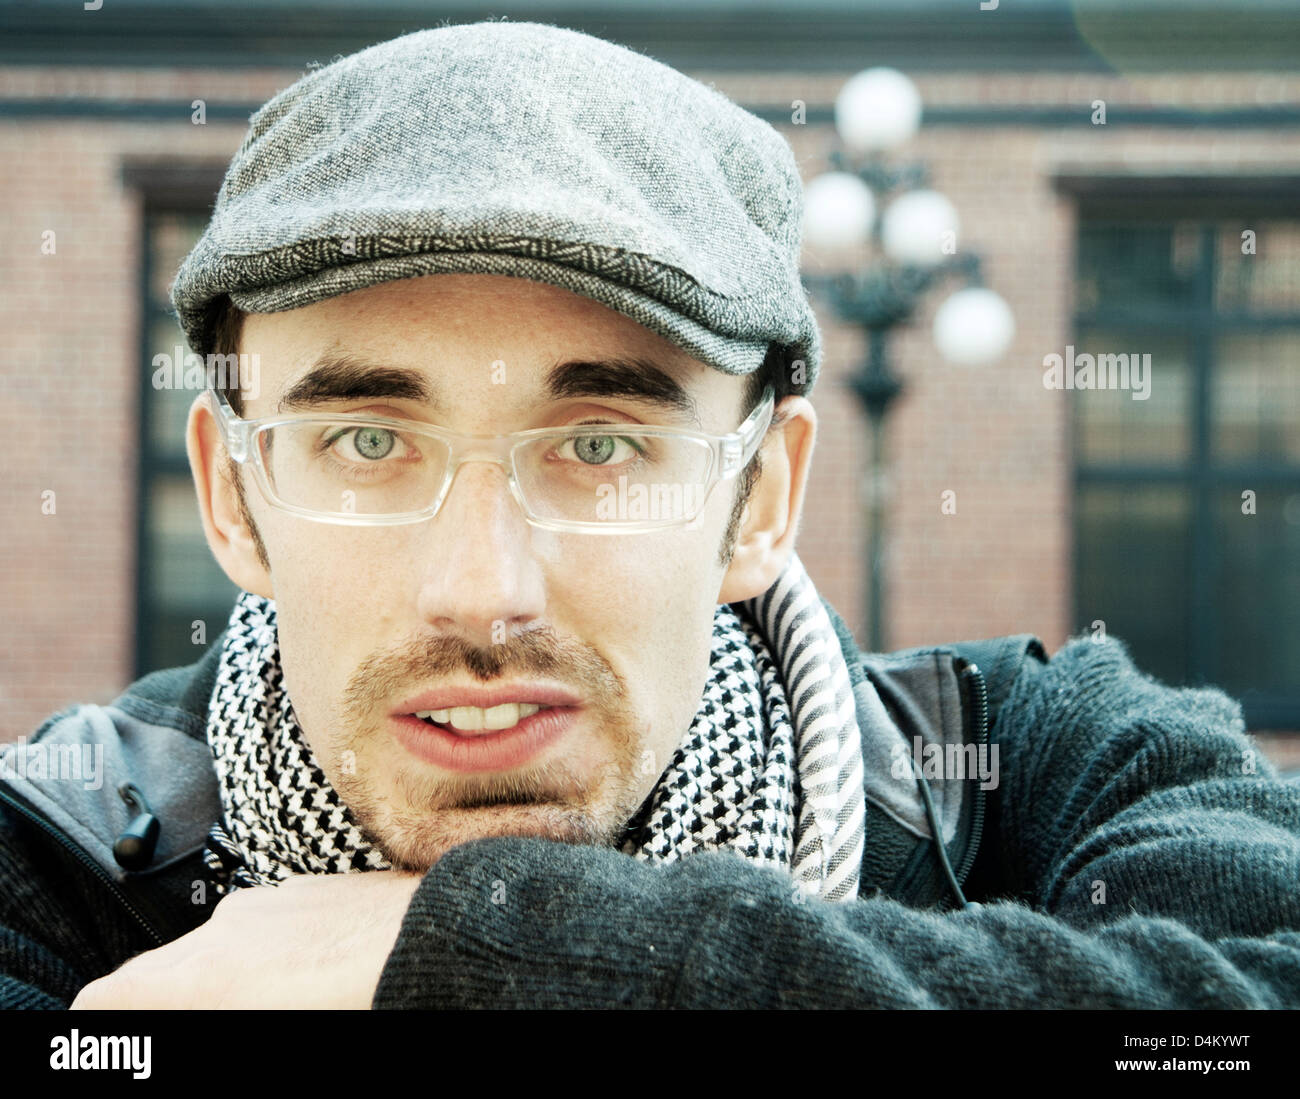 Head and shoulders portrait of man outdoors wearing trendy hat and looking directly at camera - Stock Image